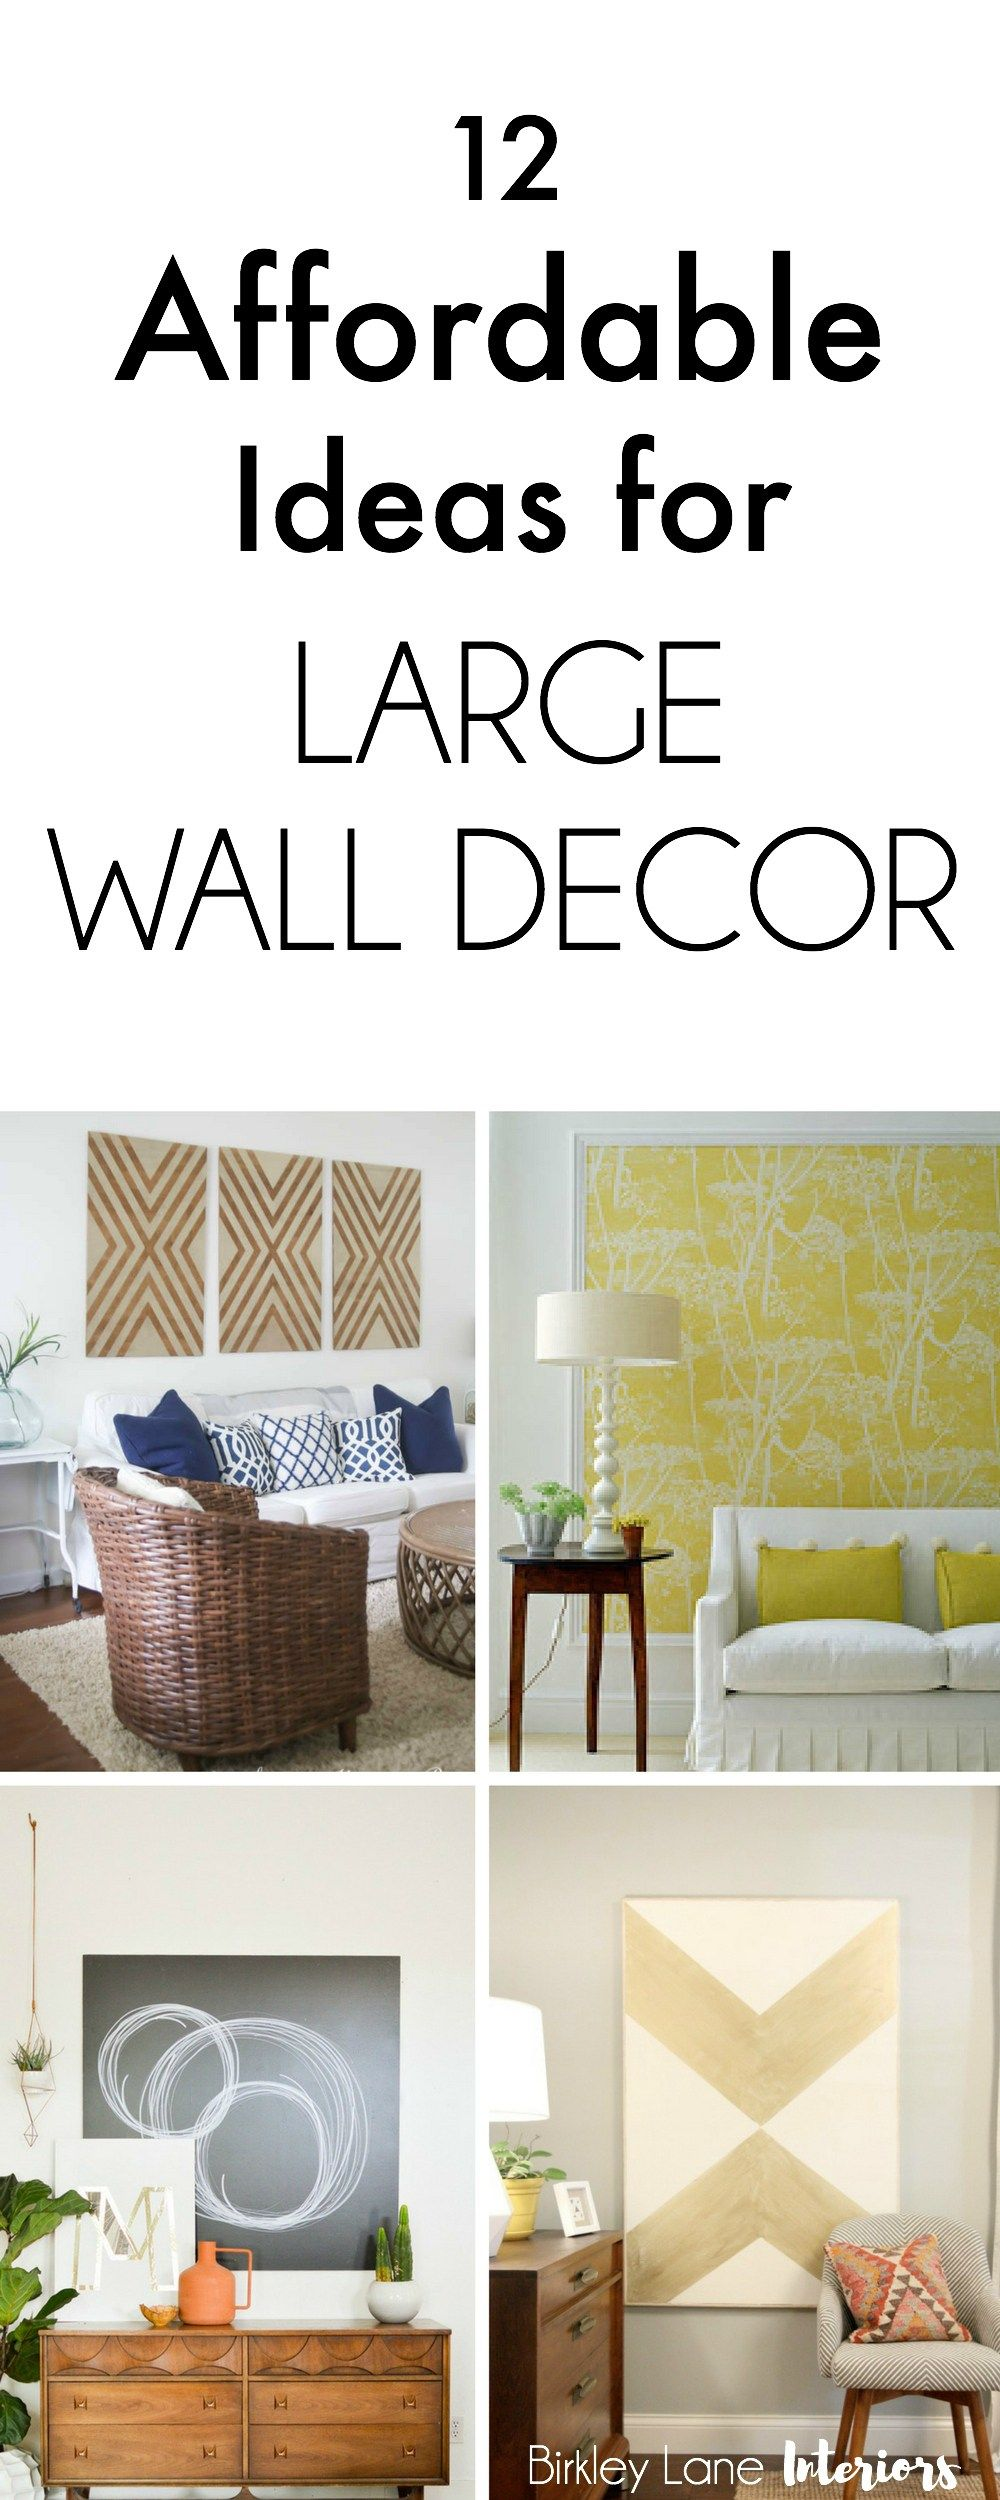 12 Affordable Ideas for Large Wall Decor | Pinterest | Decorate ...